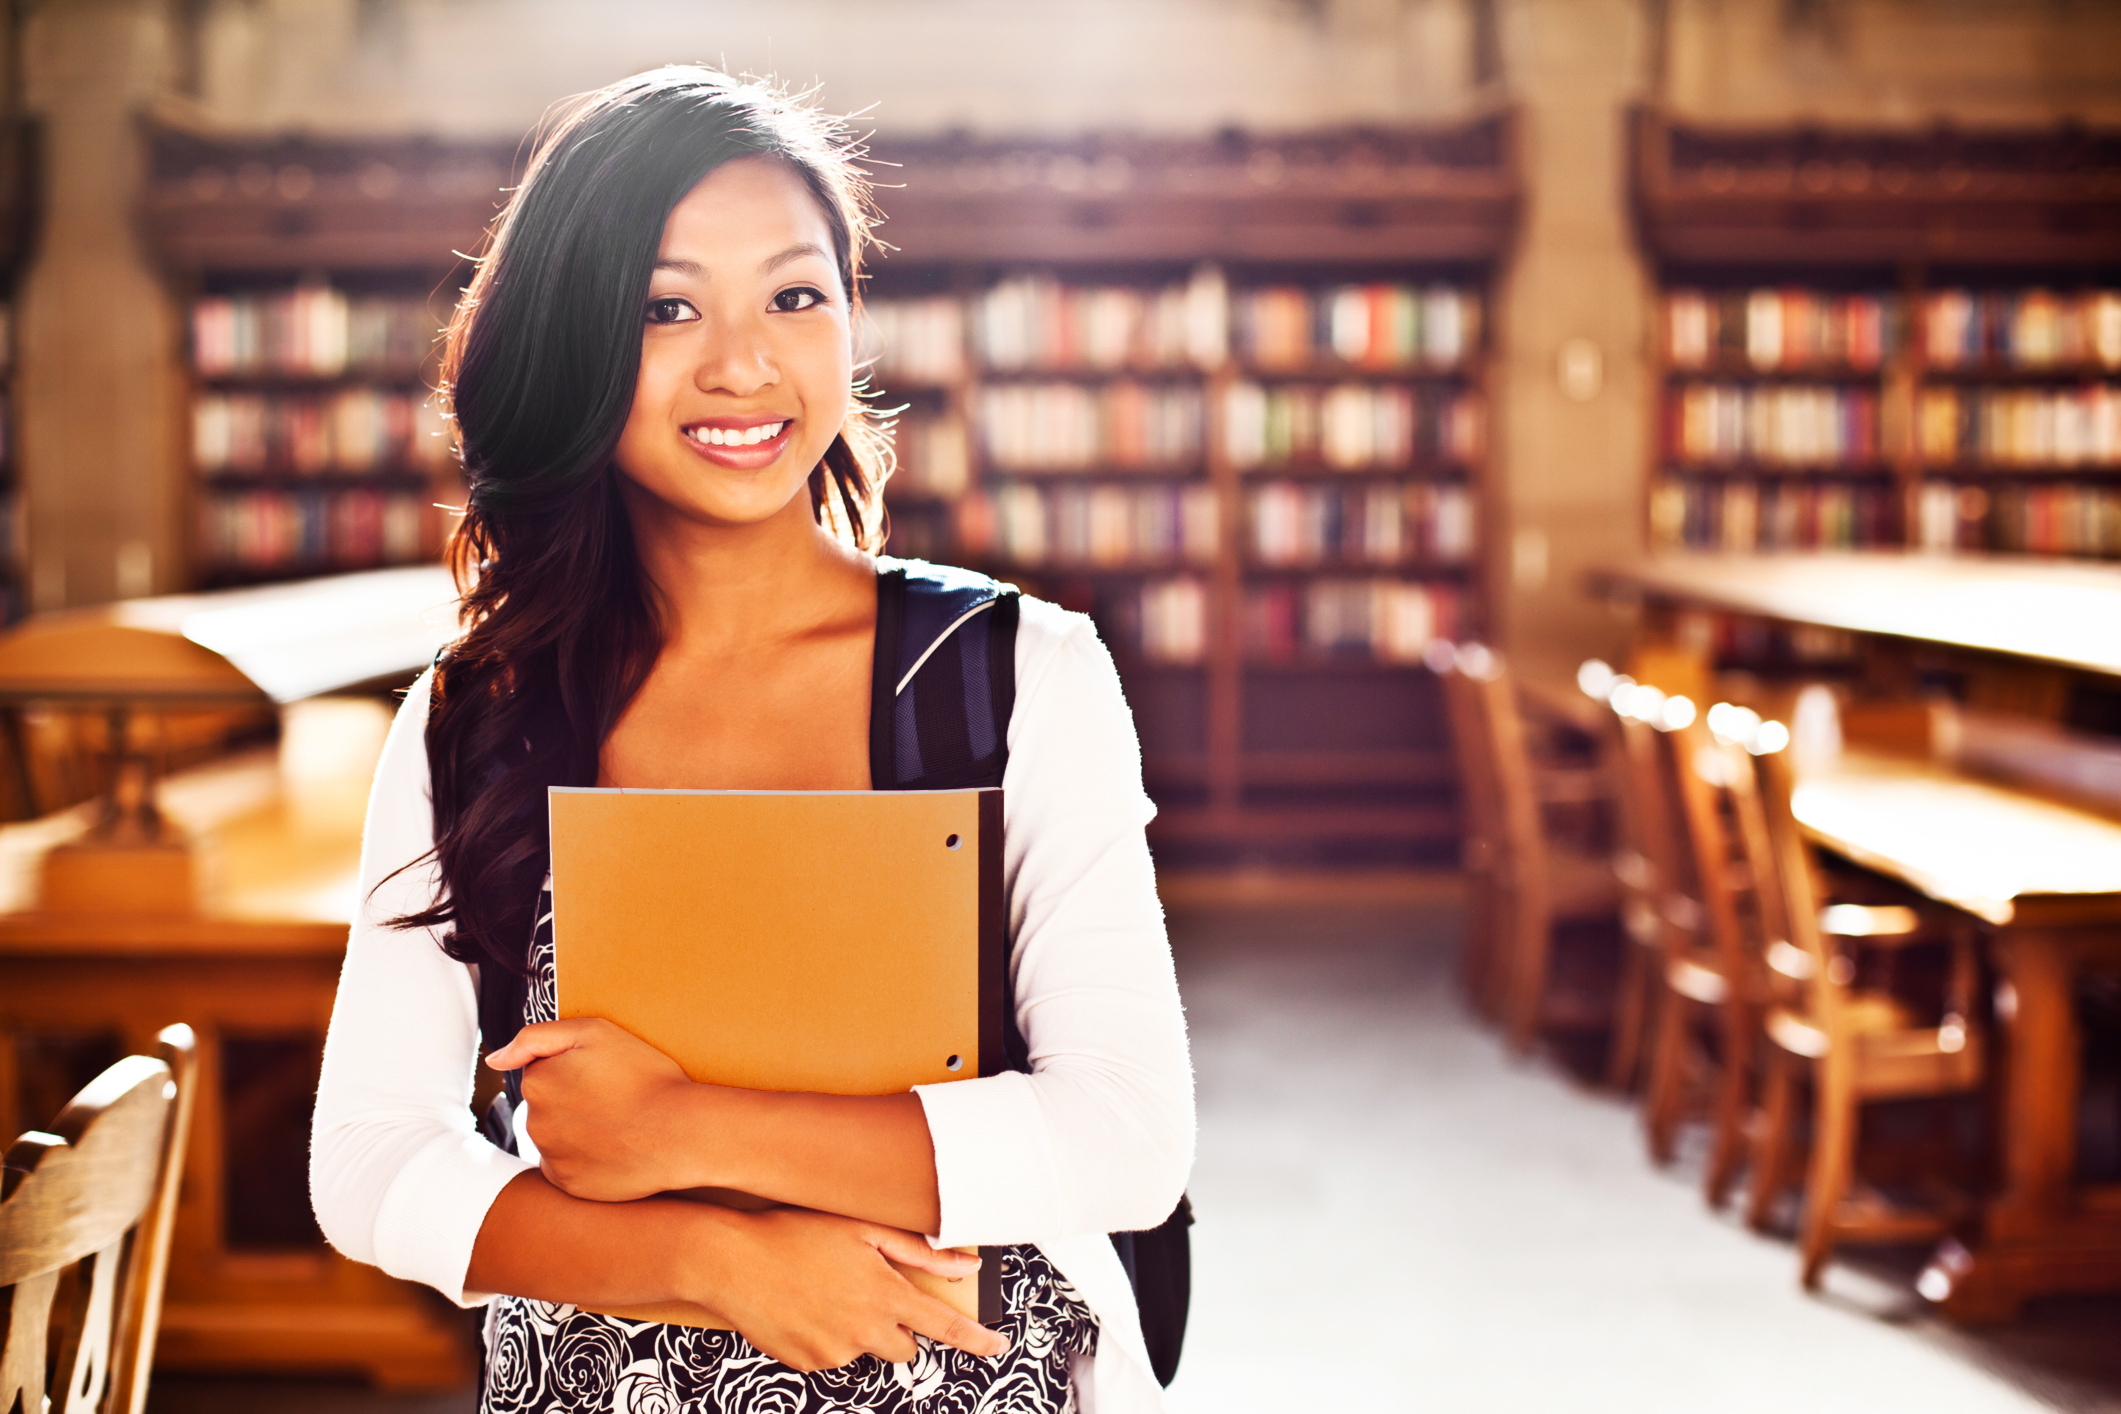 college_student_with_orange_notebook